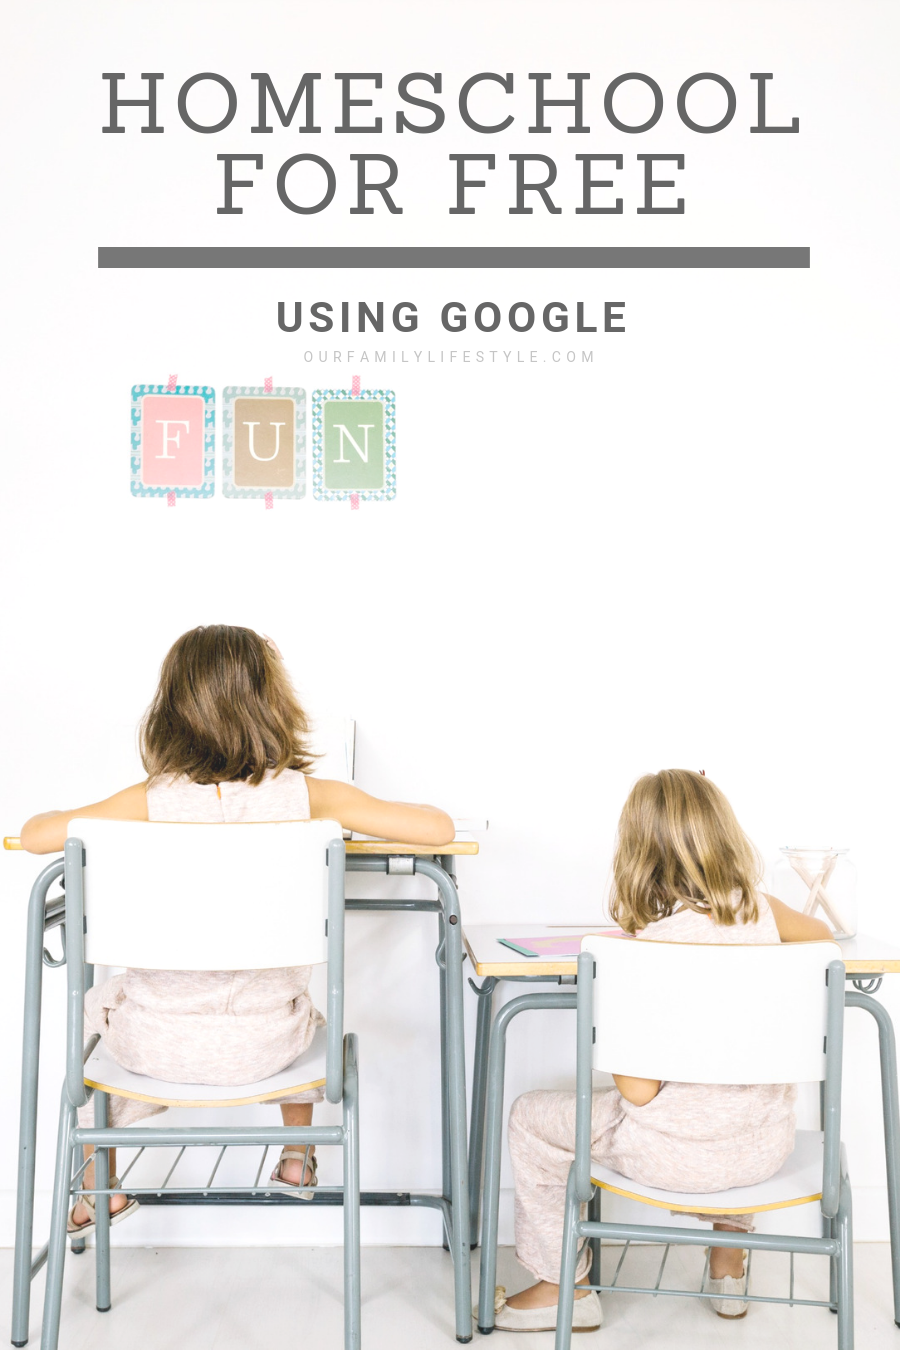 How to Homeschool for Free Using Google